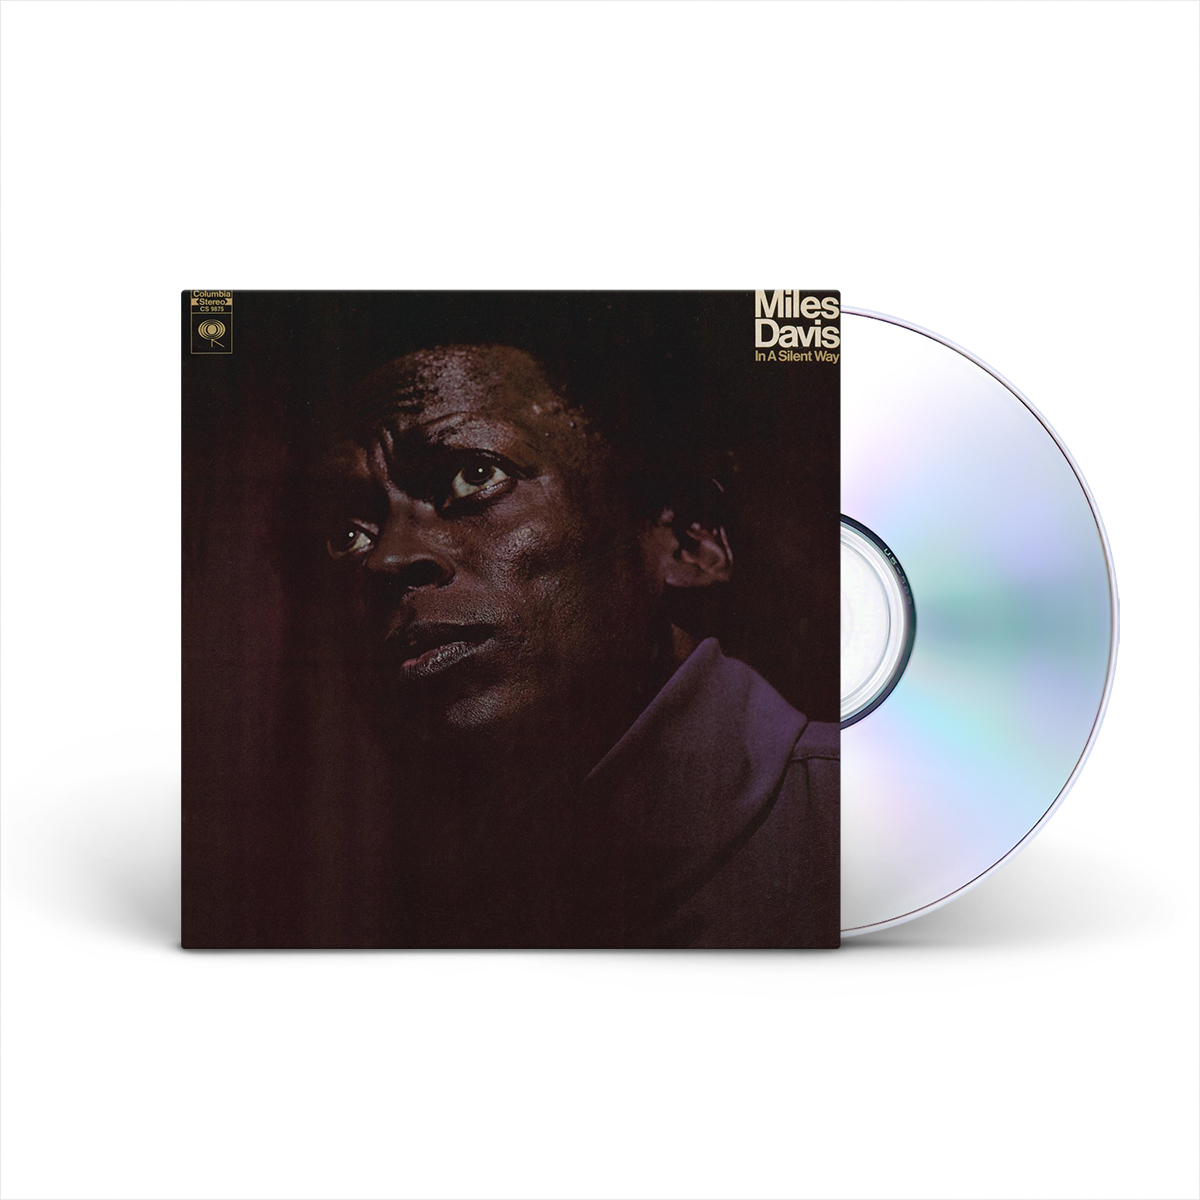 Miles Davis In A Silent Way CD